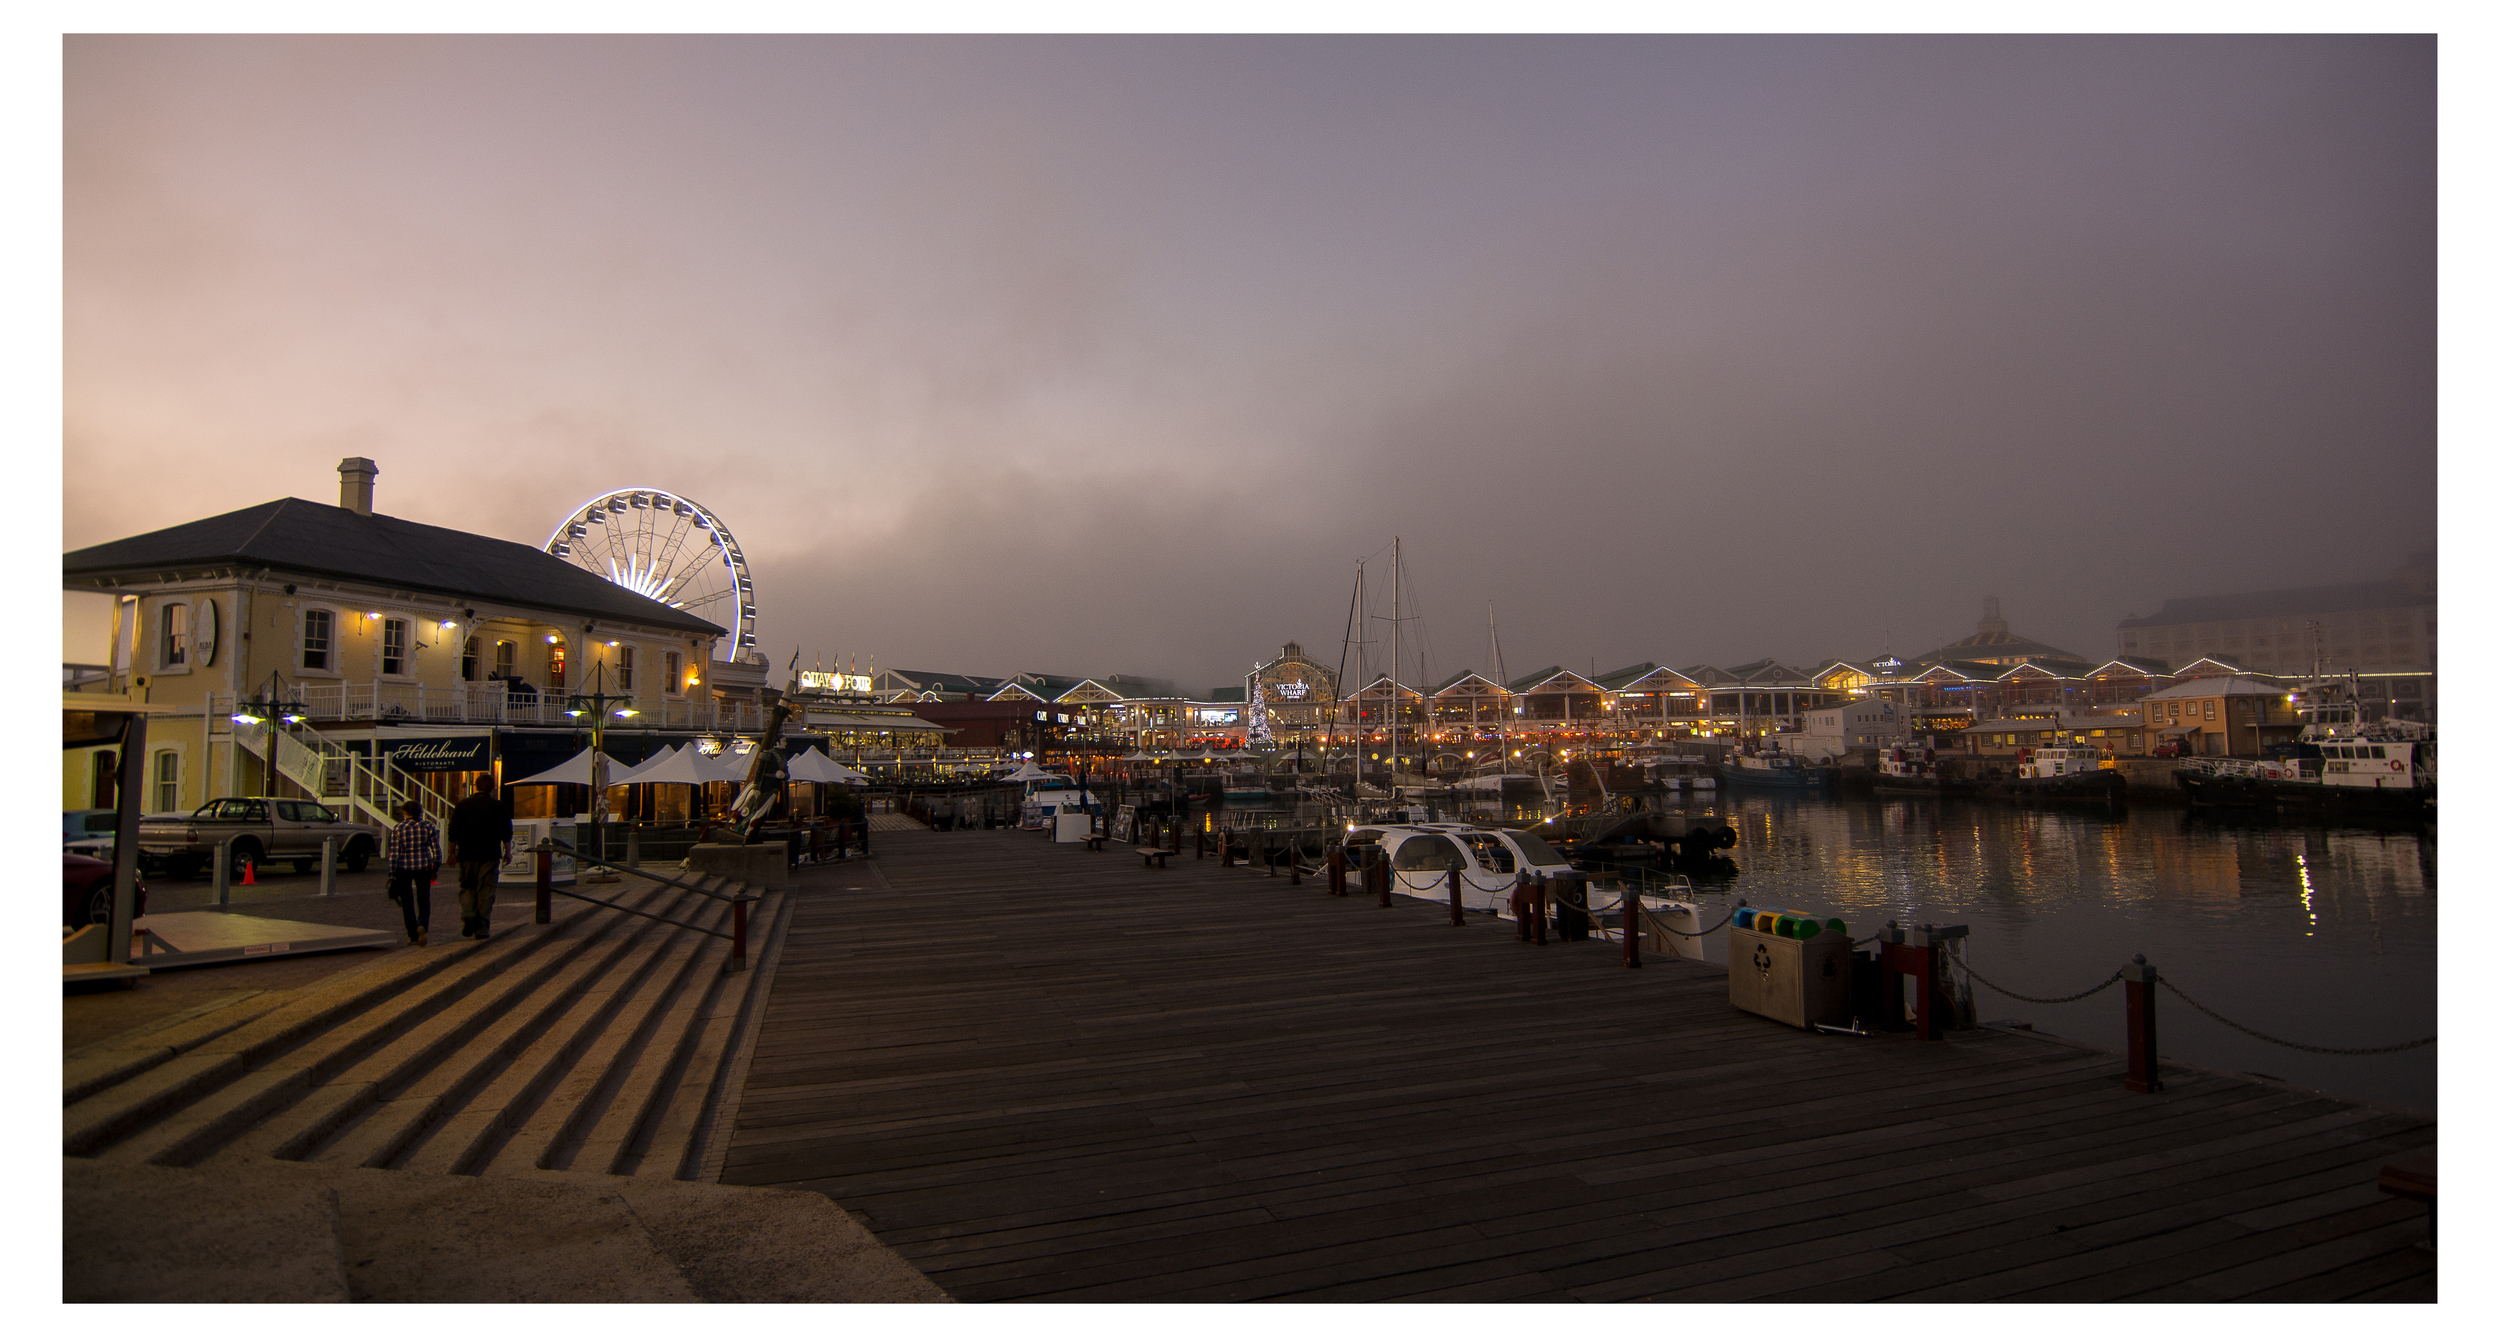 Victoria and Alfred Waterfront, South Africa